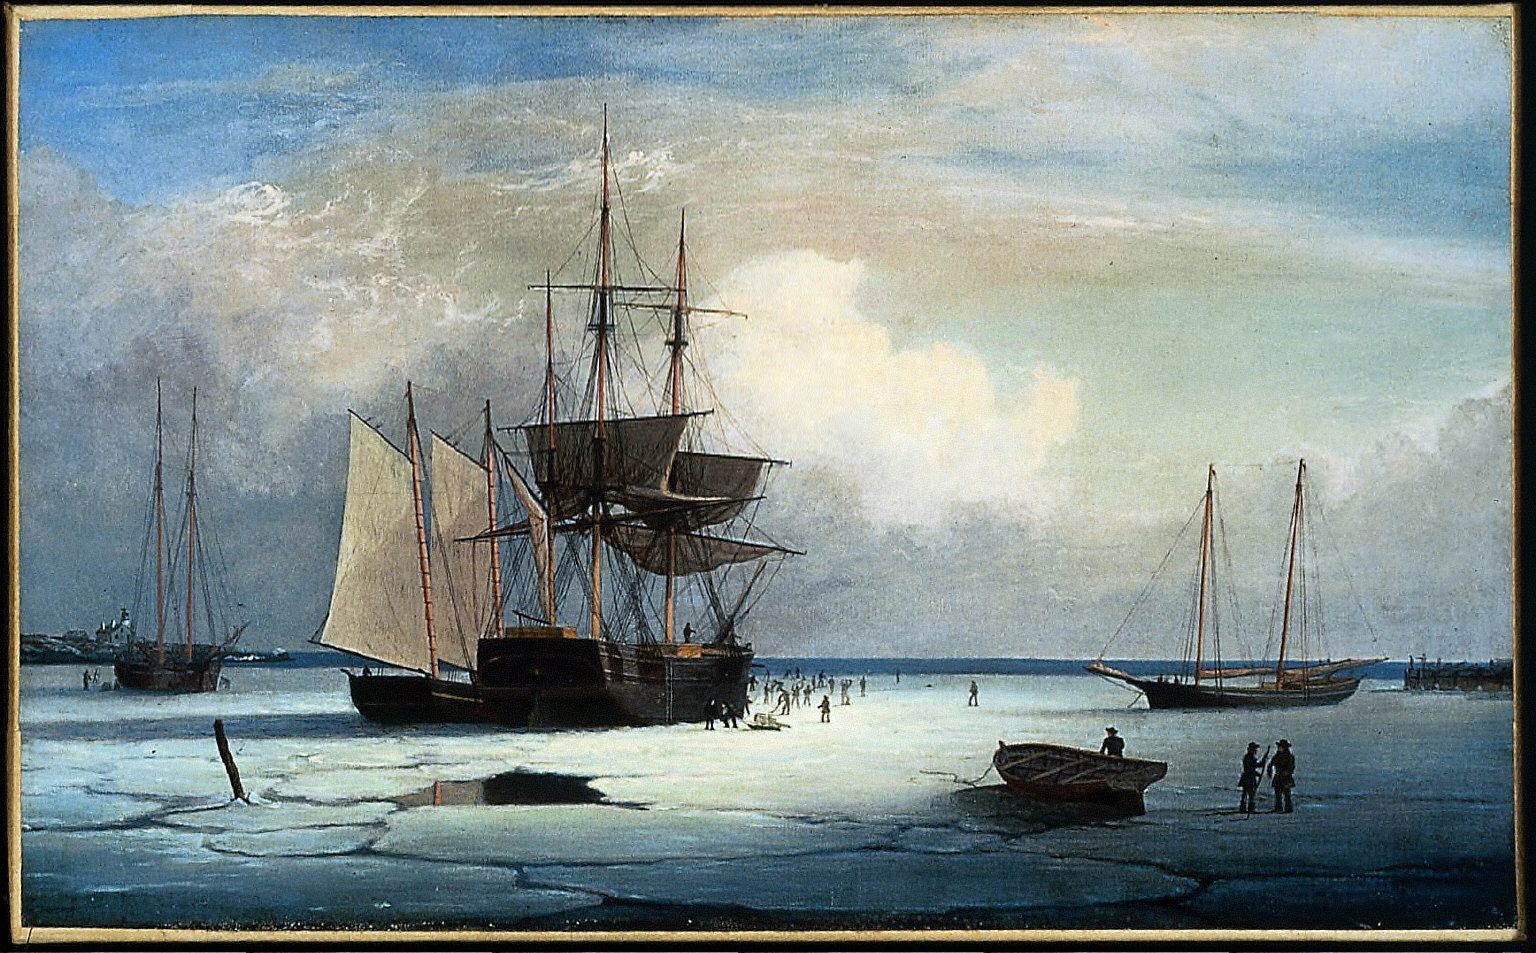 Ships in Ice off Ten Pound Island, Gloucester